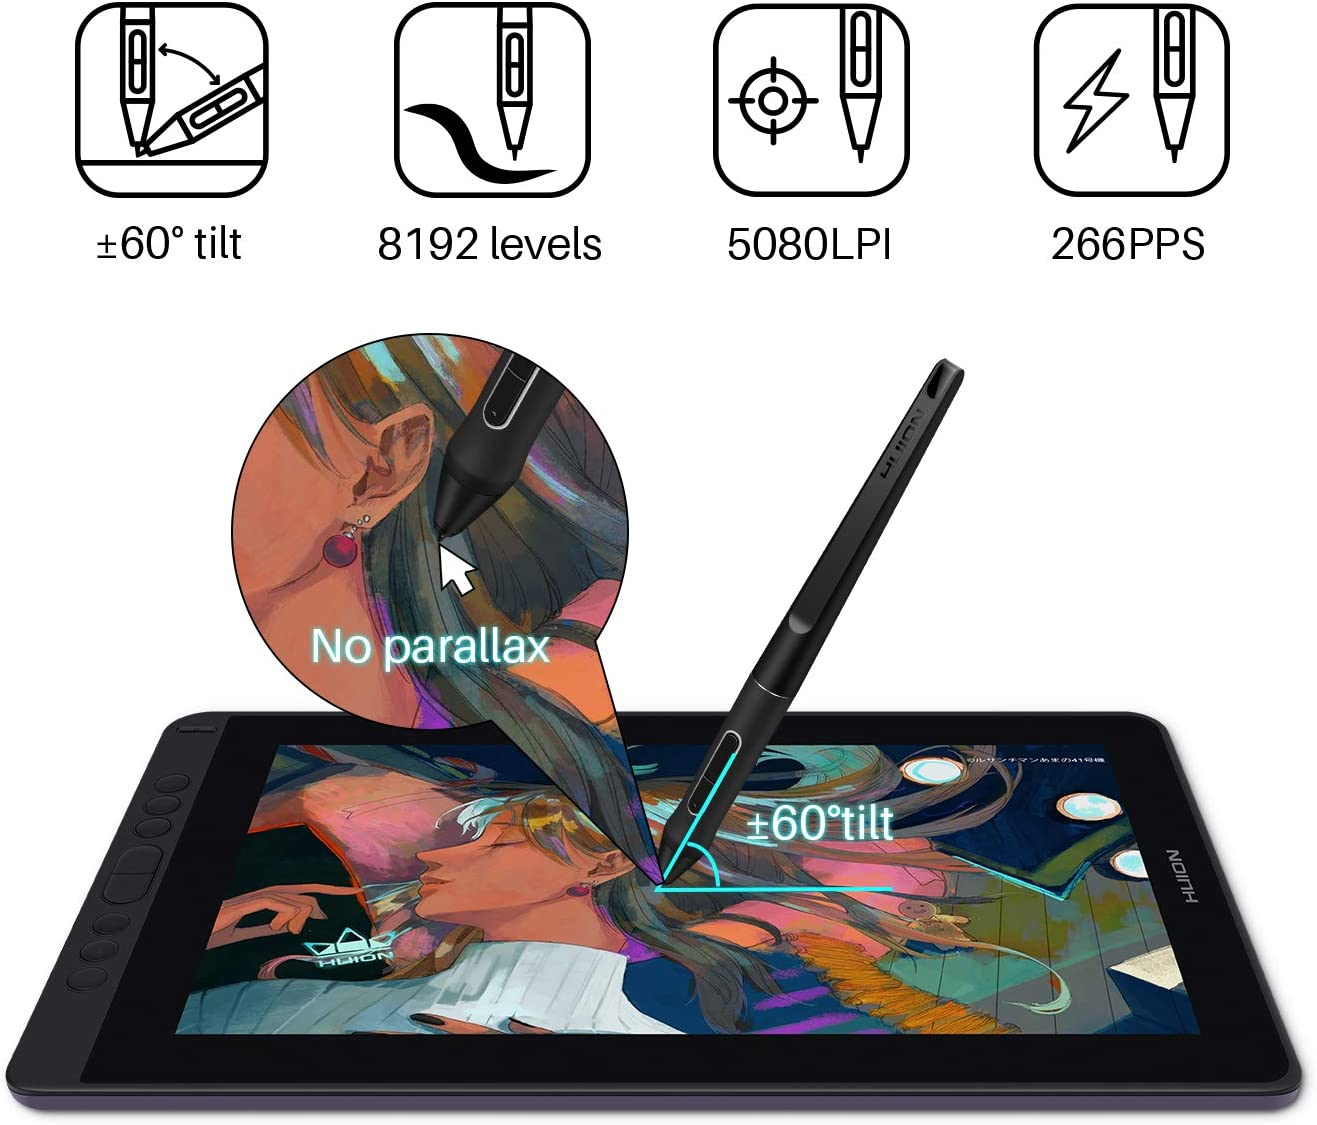 Come with Pen Tech 3.0 Battery-Free Pen 13.3 Inch Full-laminated Screen First Pen Display that Supports Connectivity with Android. Violet Purple HUION Graphics Tablet with Screen Kamvas 13